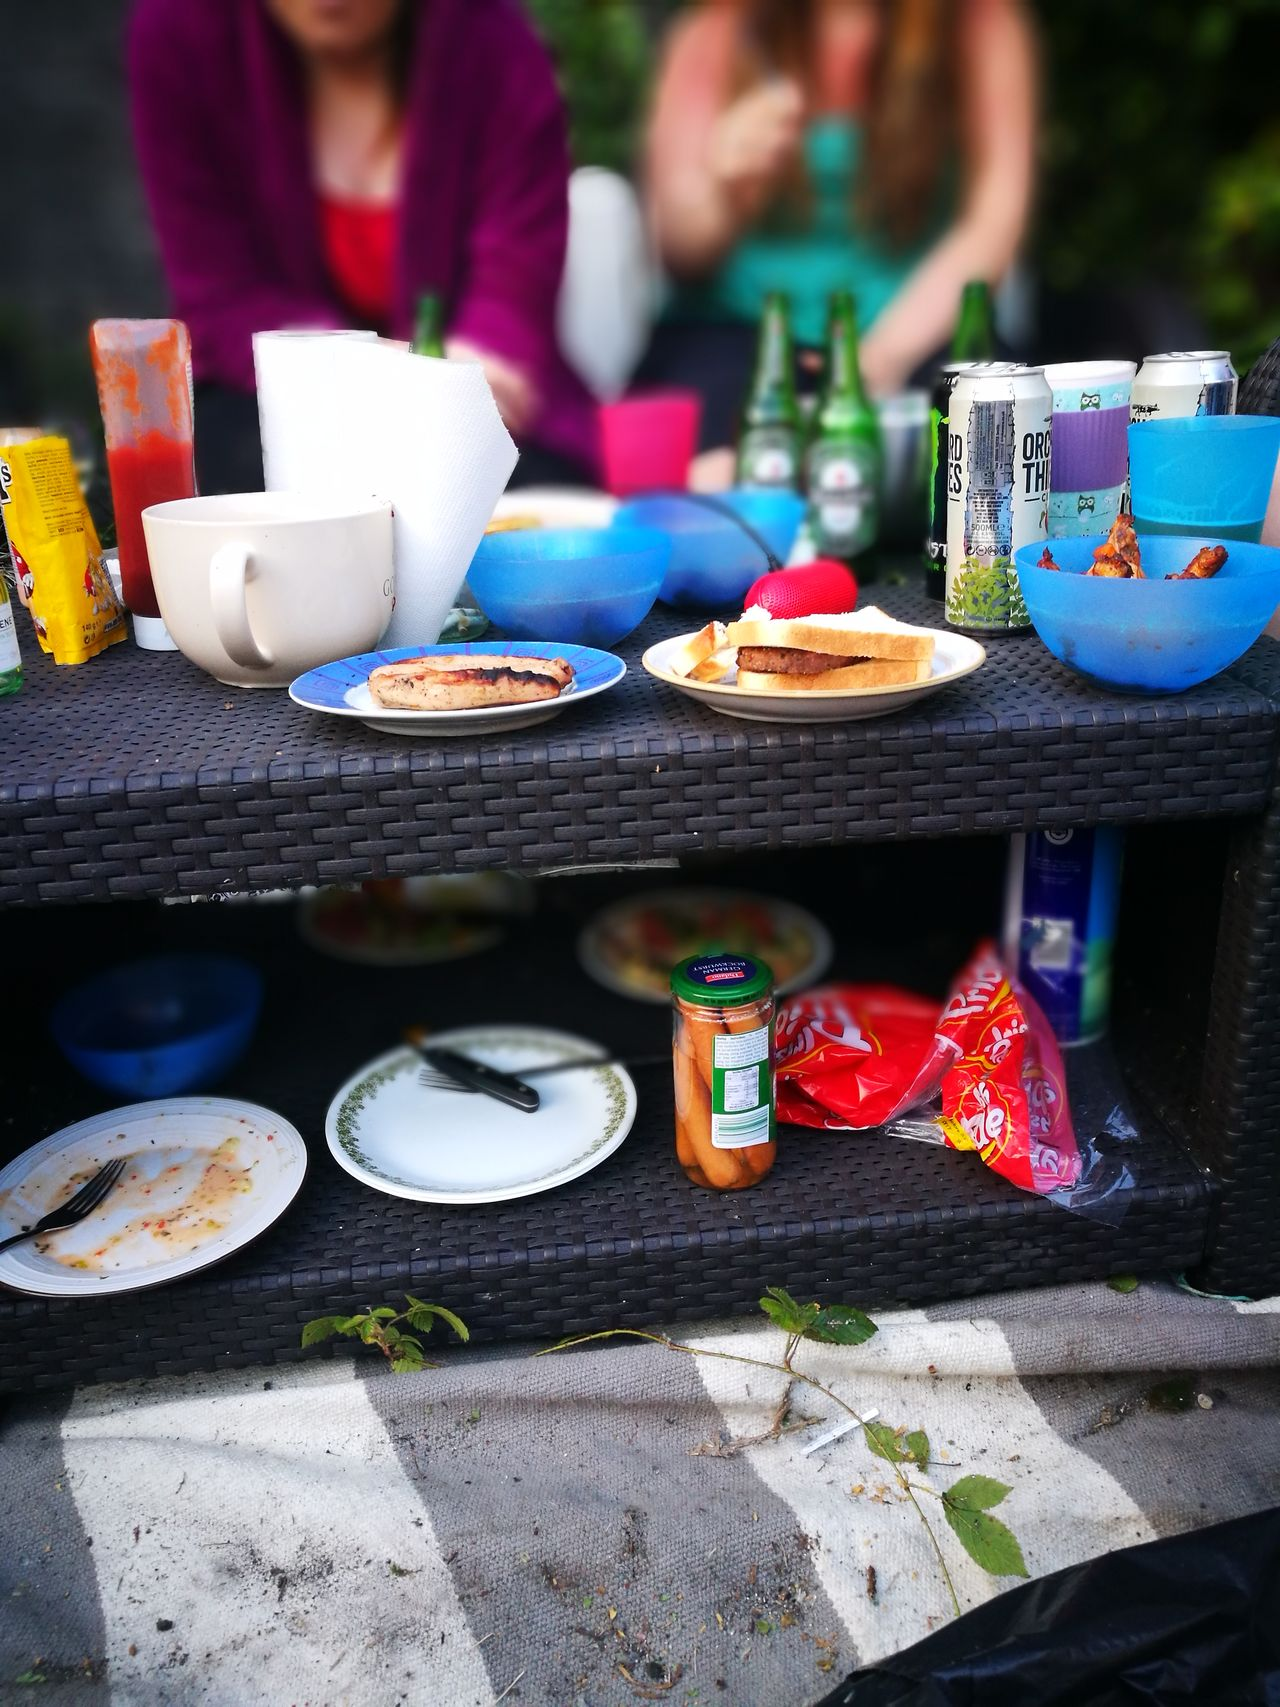 Backyard bbq Food And Drink Sweet Food Dessert Day Outdoors People Drink Food Sandwich Wexford Ireland